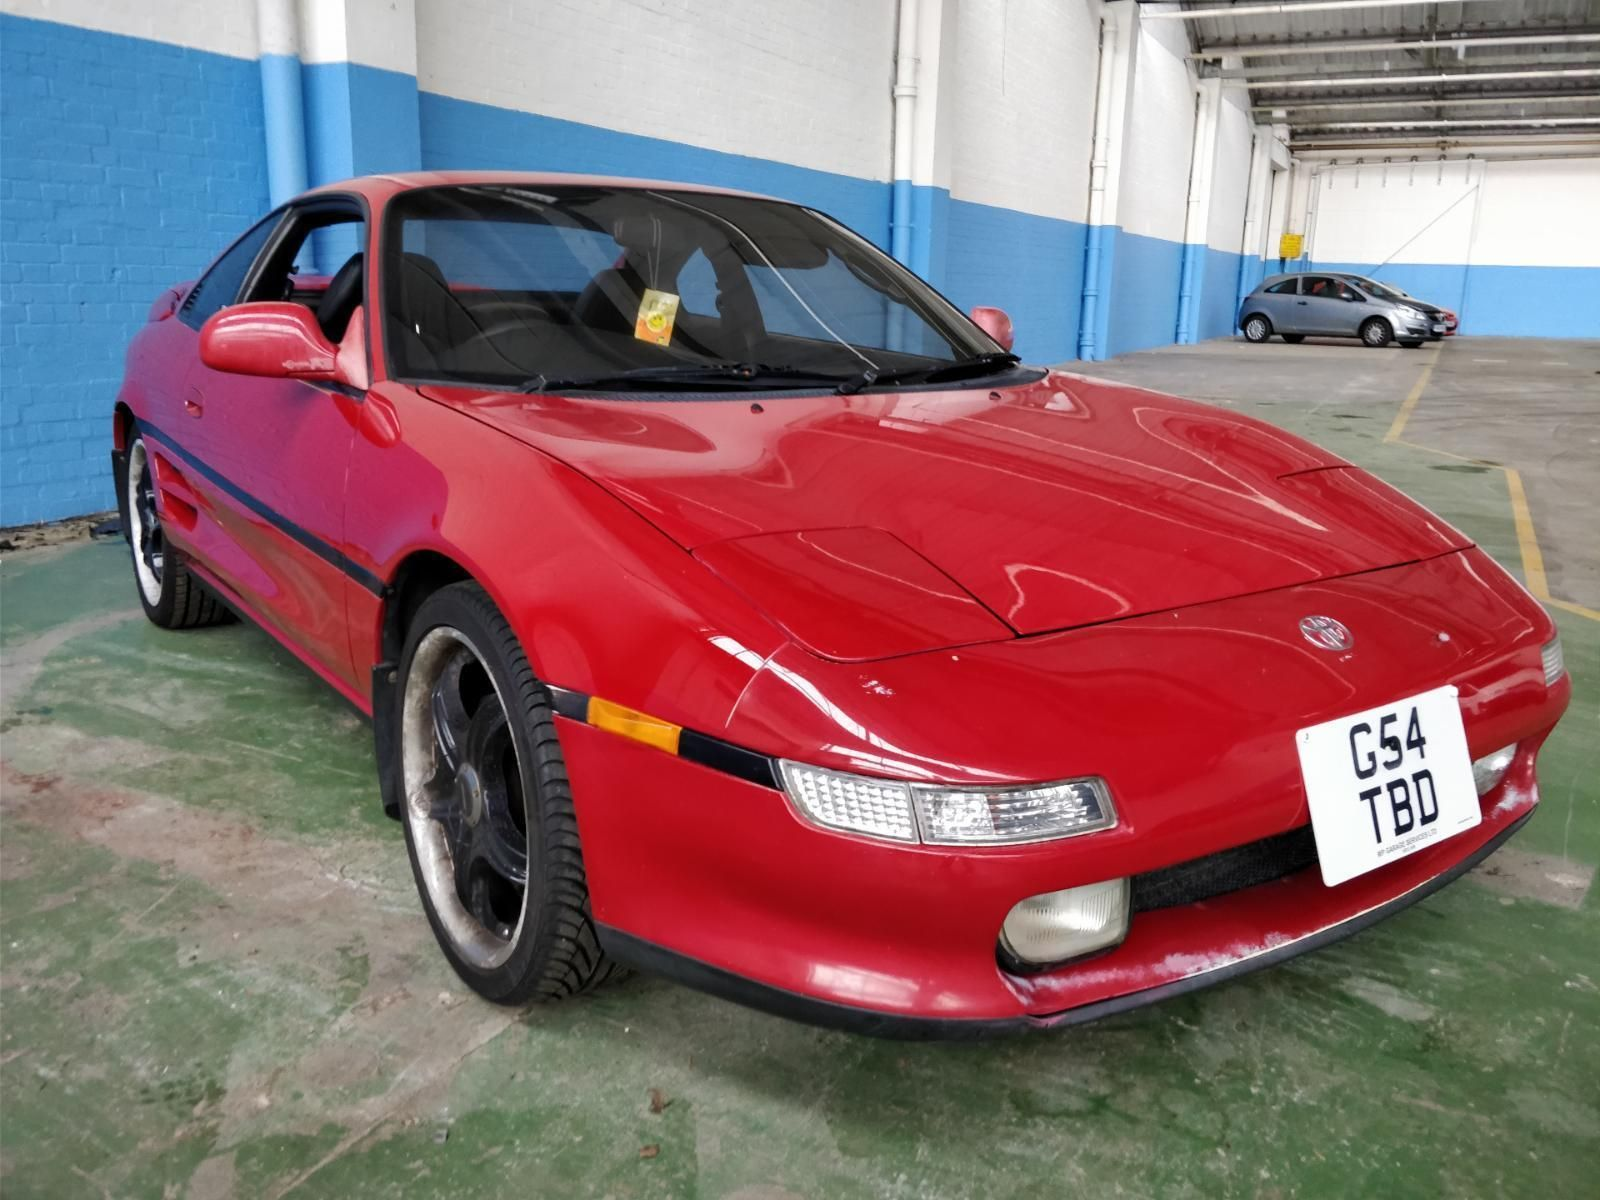 This 1990 Toyota Mr2 Turbo Coupe Petrol is for sale